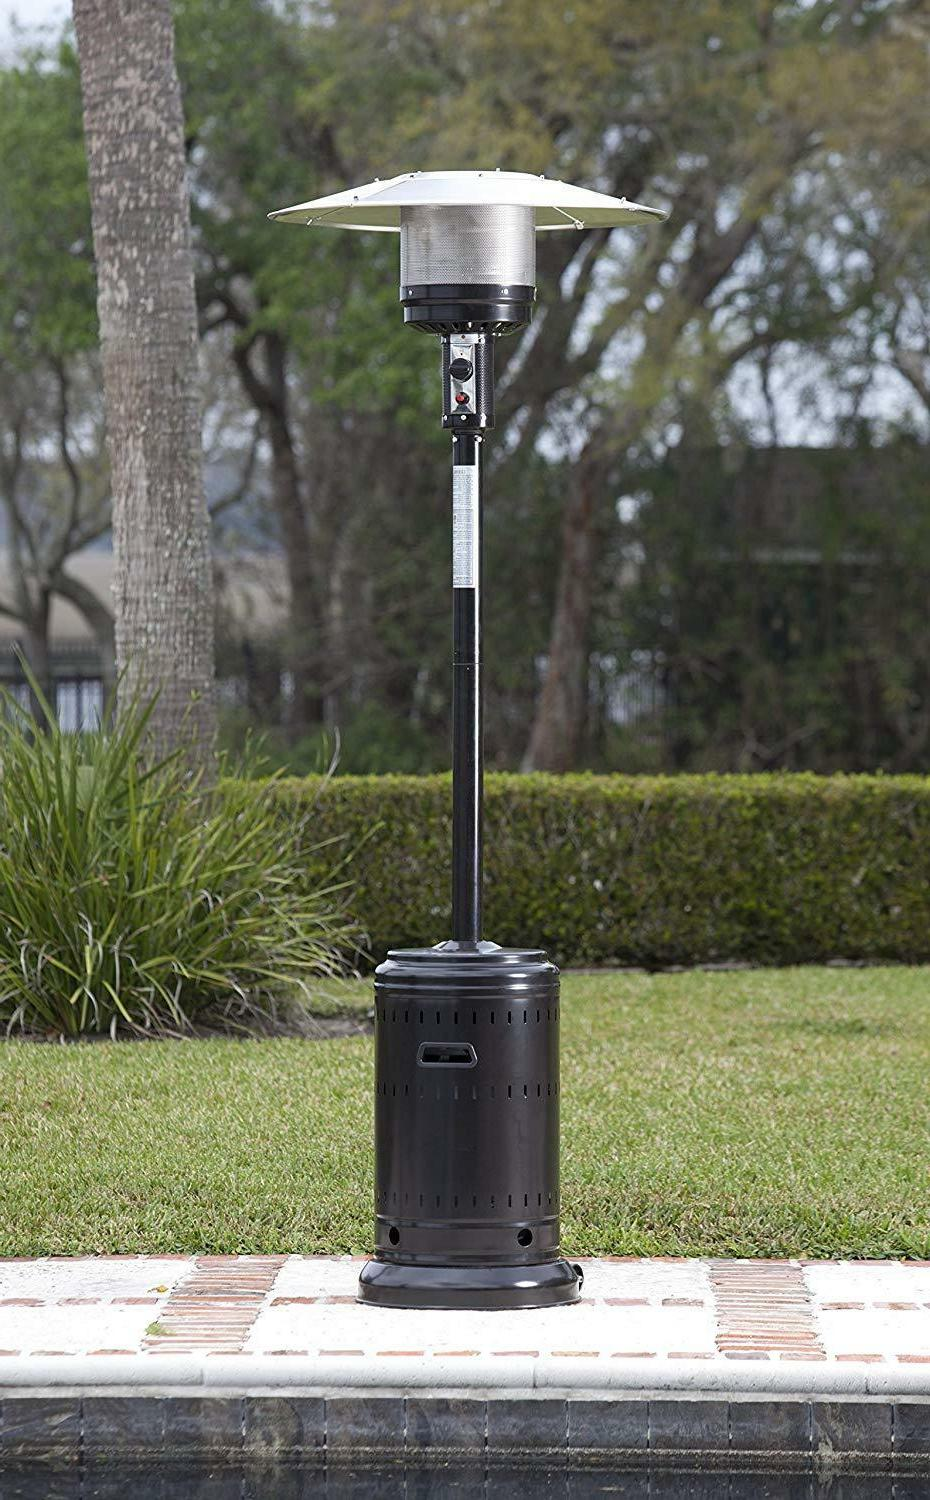 New AmazonBasics Patio Heater, BTU